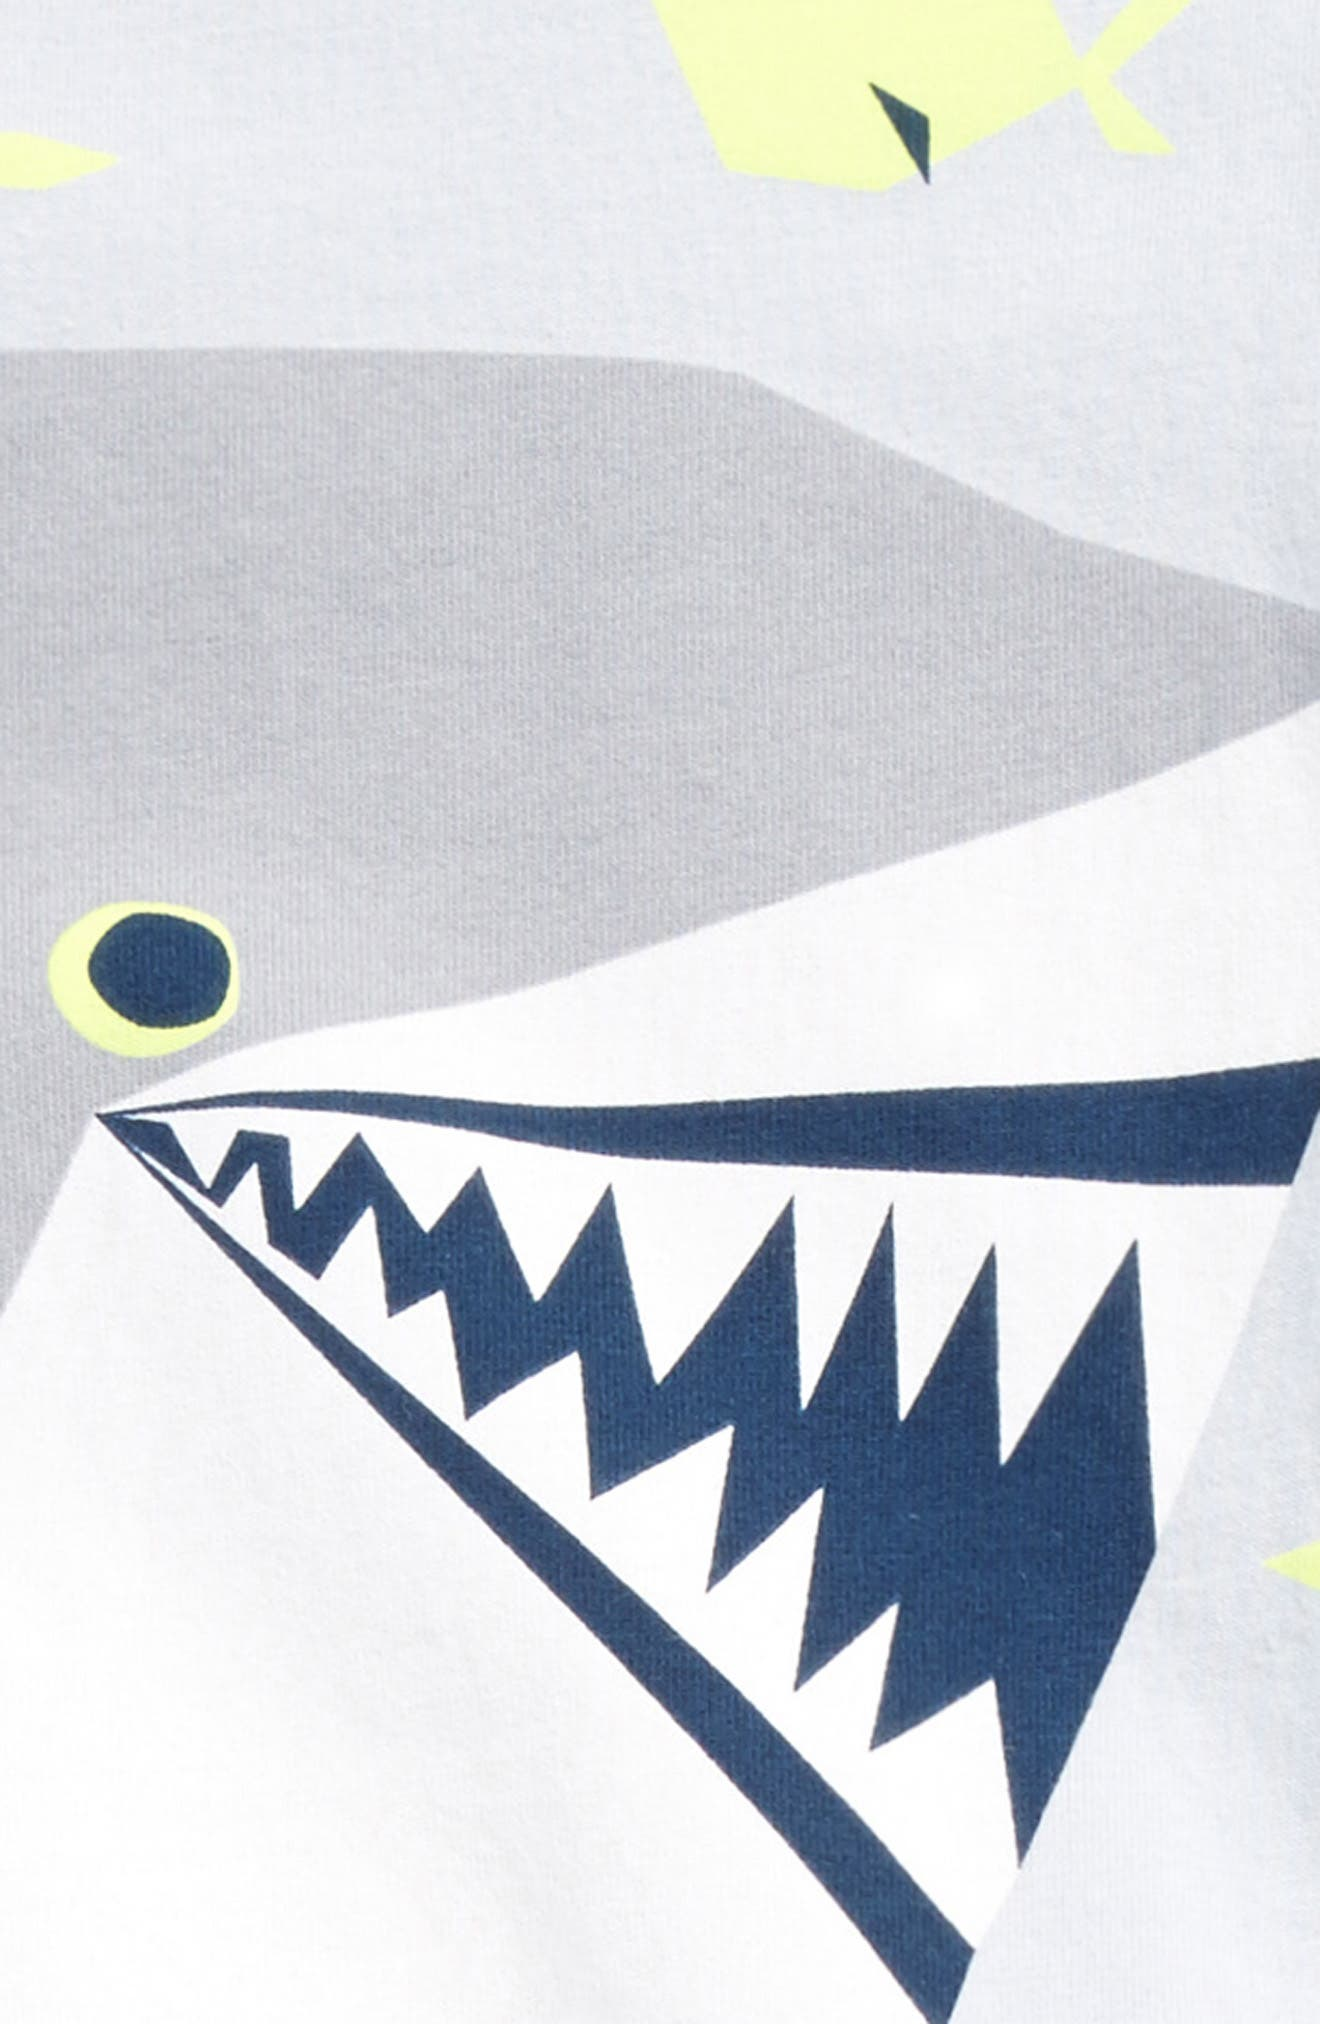 Smiling Shark T-Shirt & Shorts Set,                             Alternate thumbnail 2, color,                             020